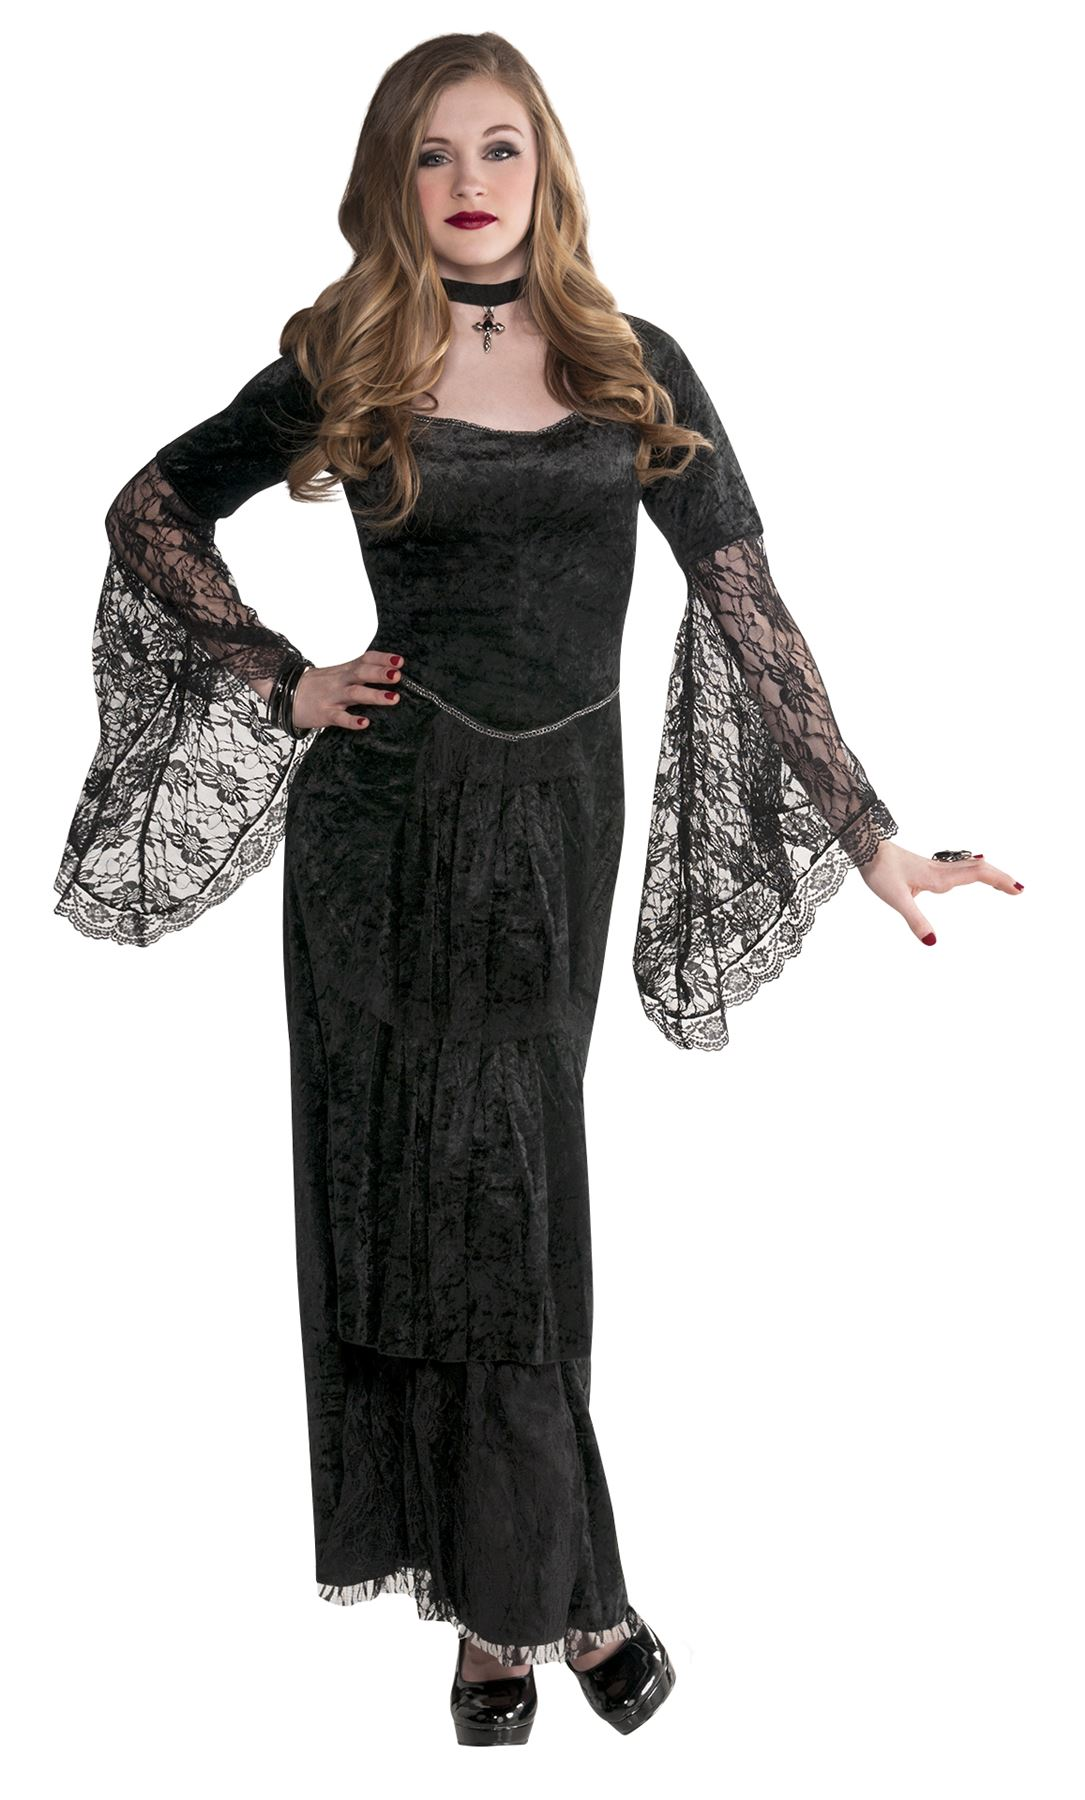 Teen-Girls-Gothic-Temptress-Costume-V&ire-Witch-Halloween-  sc 1 st  eBay & Teen Girls Gothic Temptress Costume Vampire Witch Halloween Costume ...